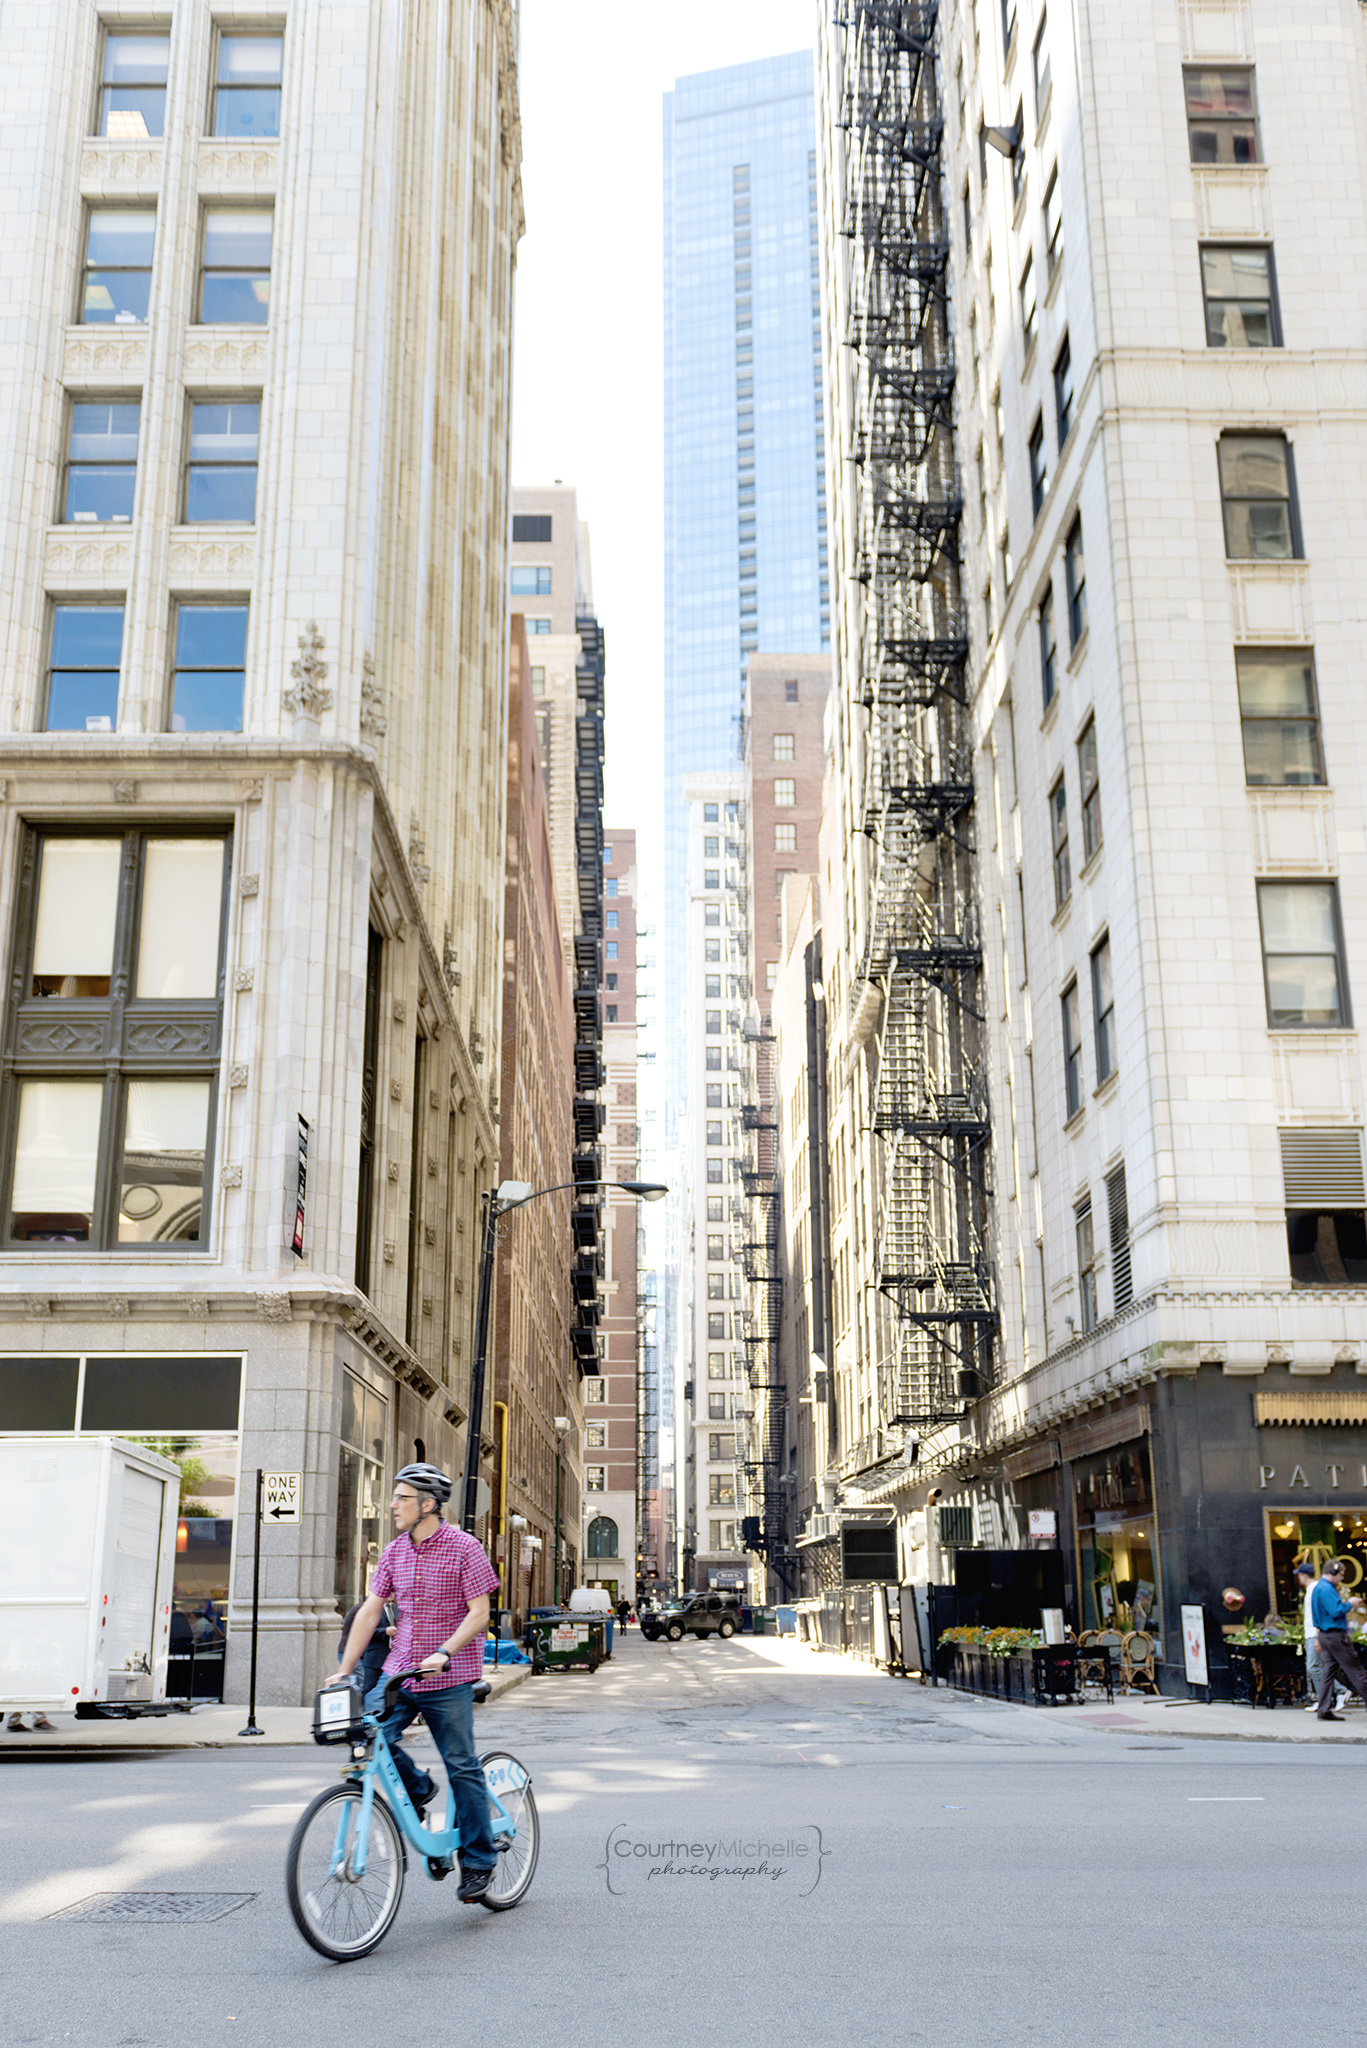 alley_chicago_street_photography_courtney_laper_photography.jpg